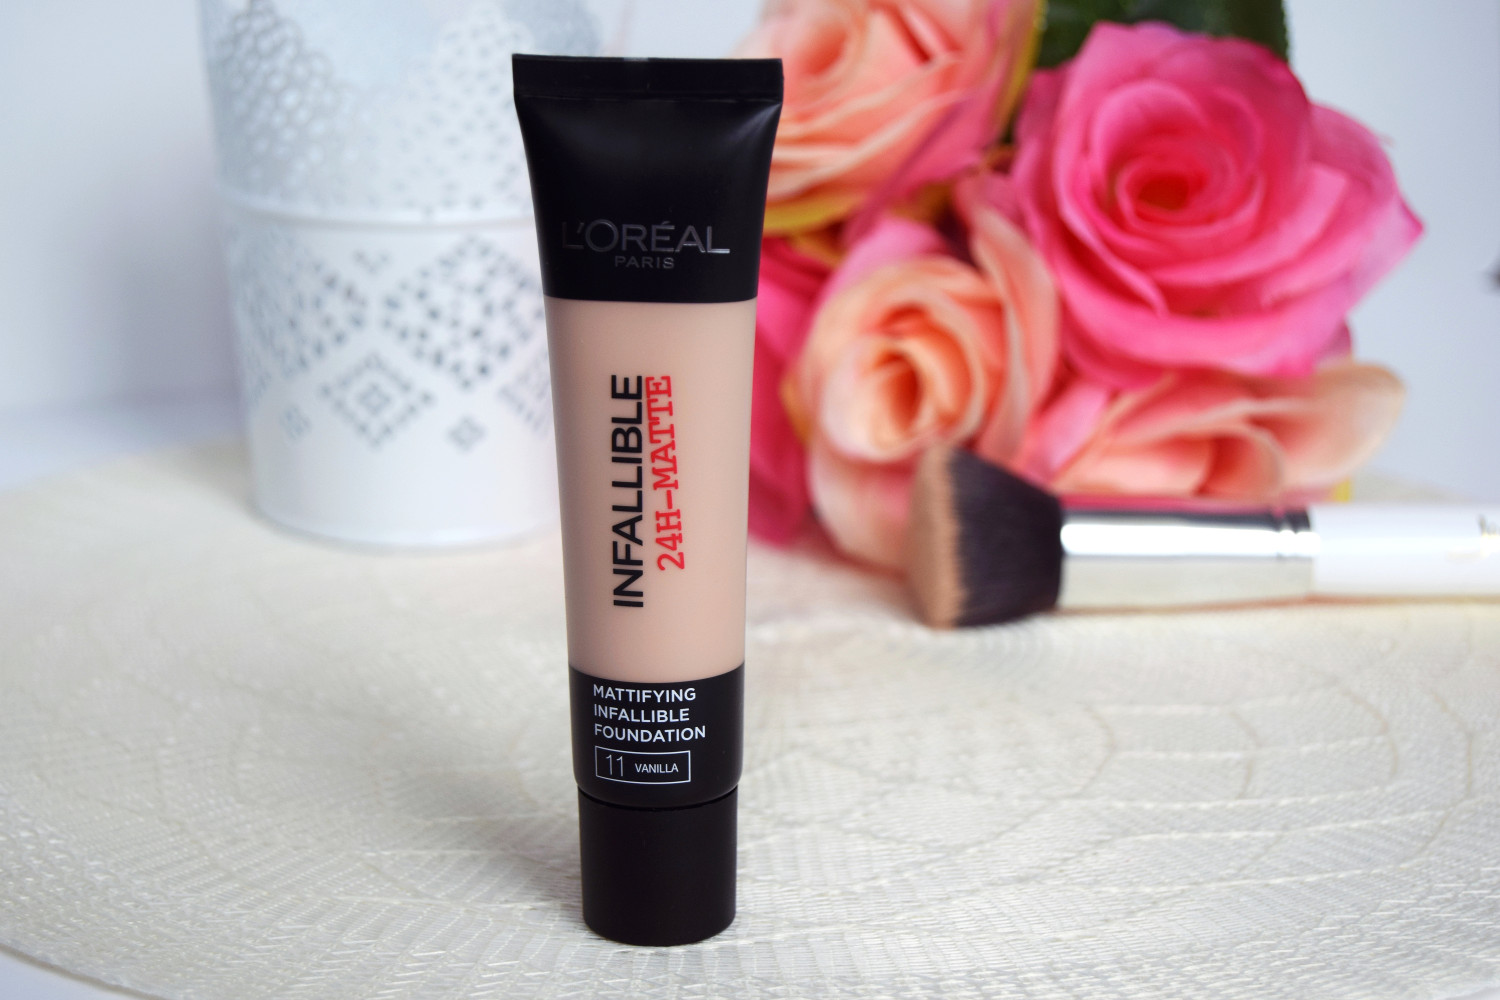 Loreal_Infallible_24h_matte_review_Zalabell_beauty_6